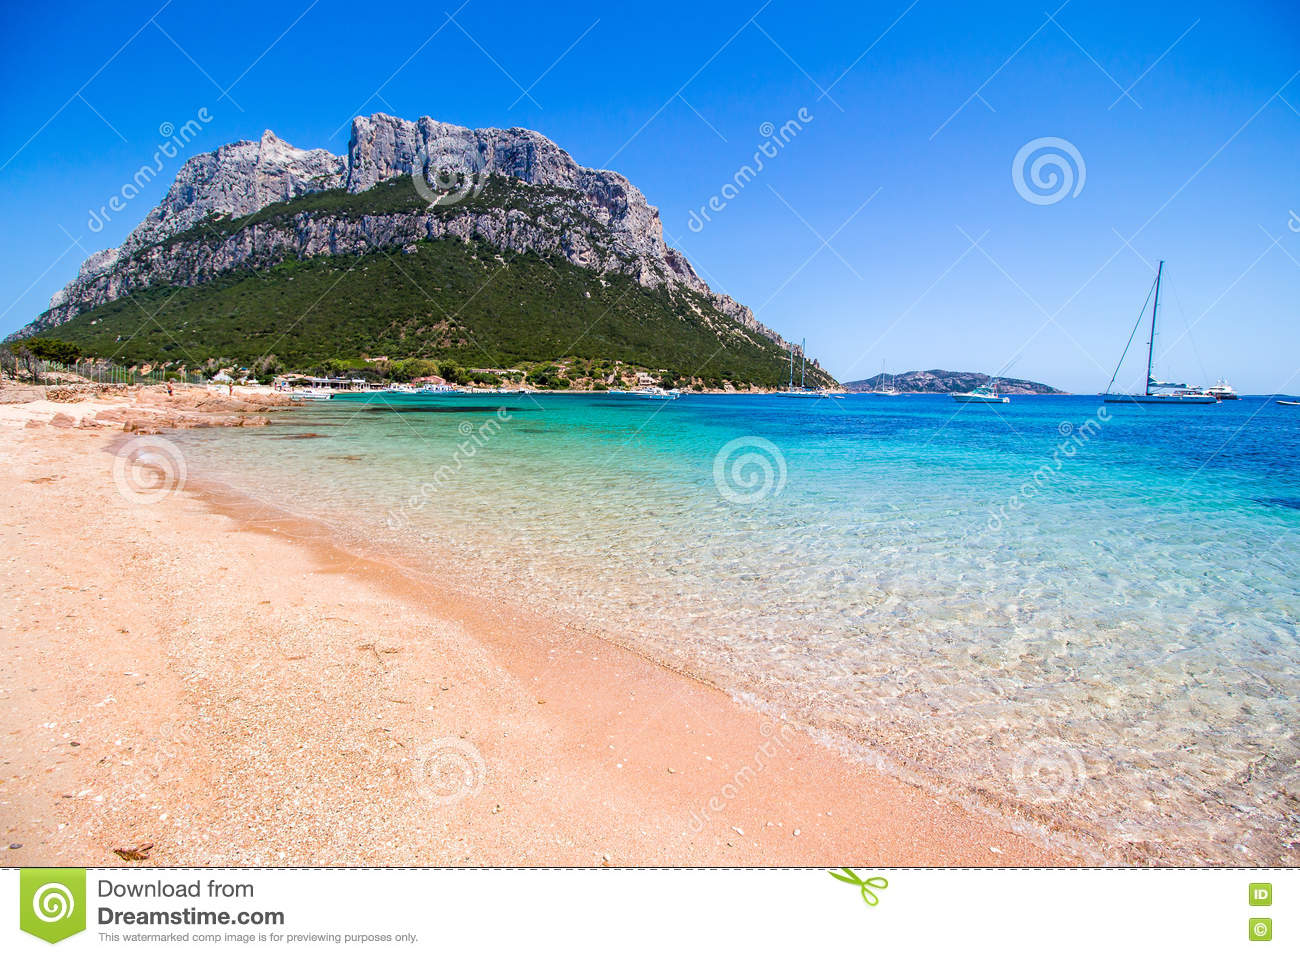 Spalmatore Beach In Tavolara Island, Sardinia, Italy Stock Photo.